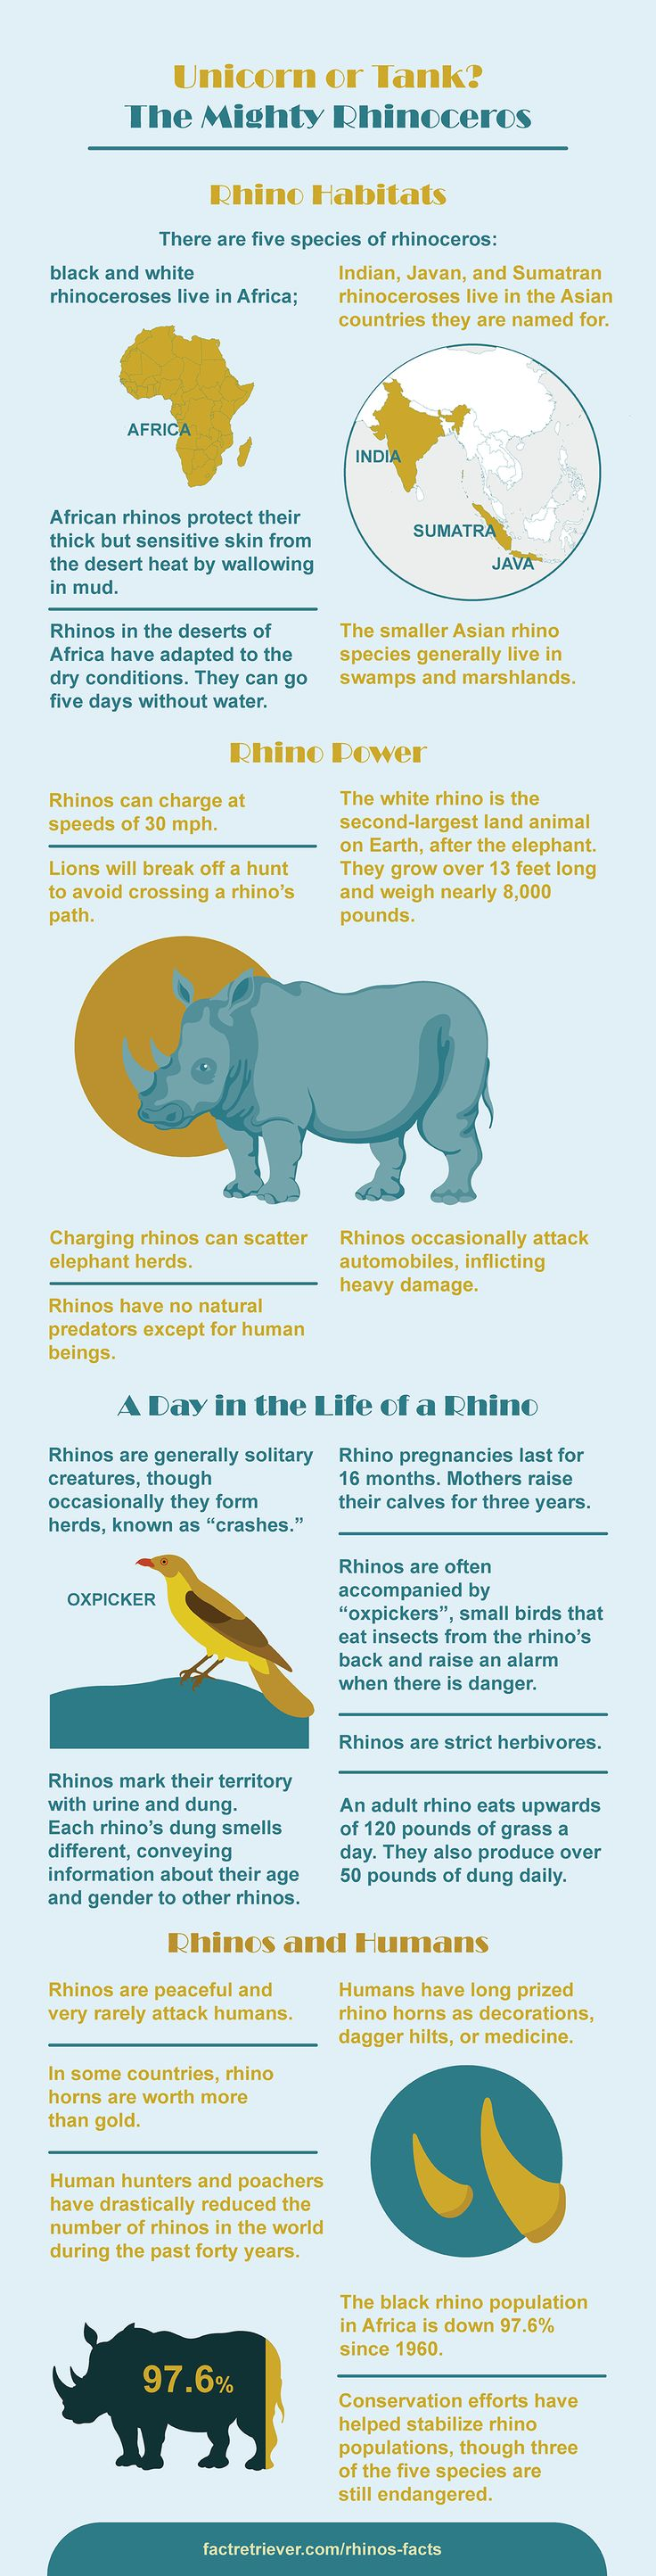 All the most interesting rhino facts in one amazing infographic.